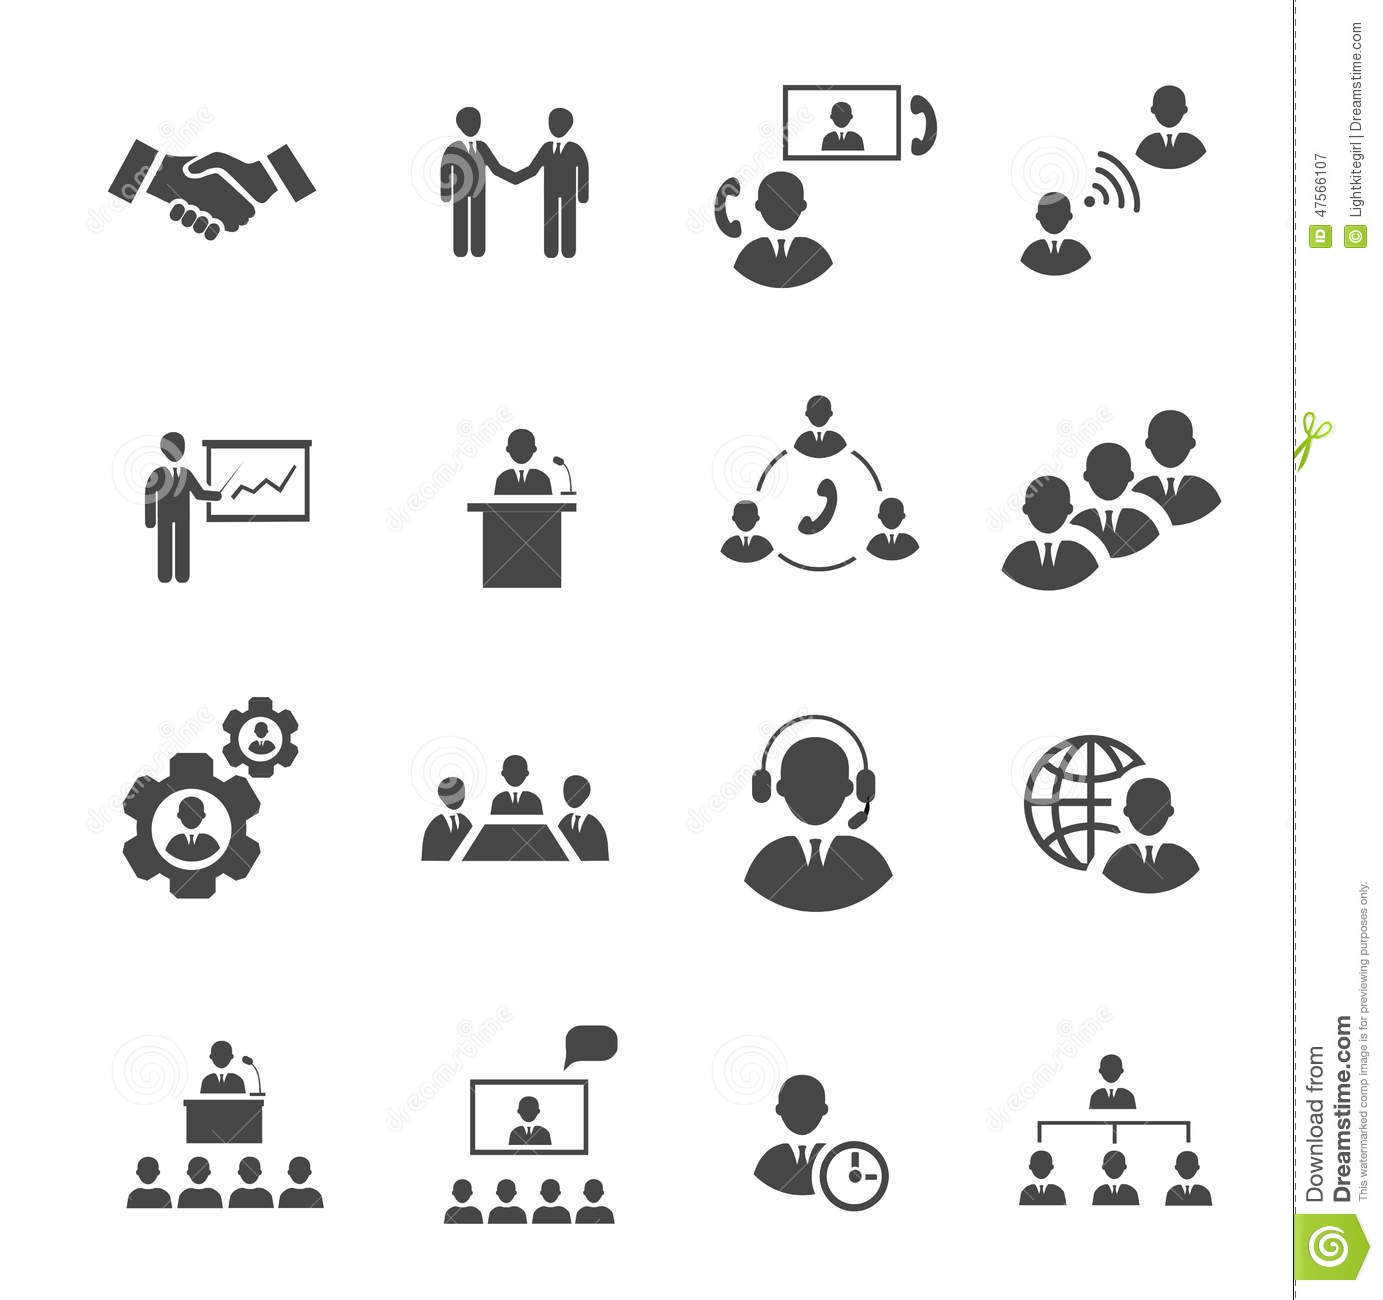 Business People Online Meeting Strategic Pictograms Set